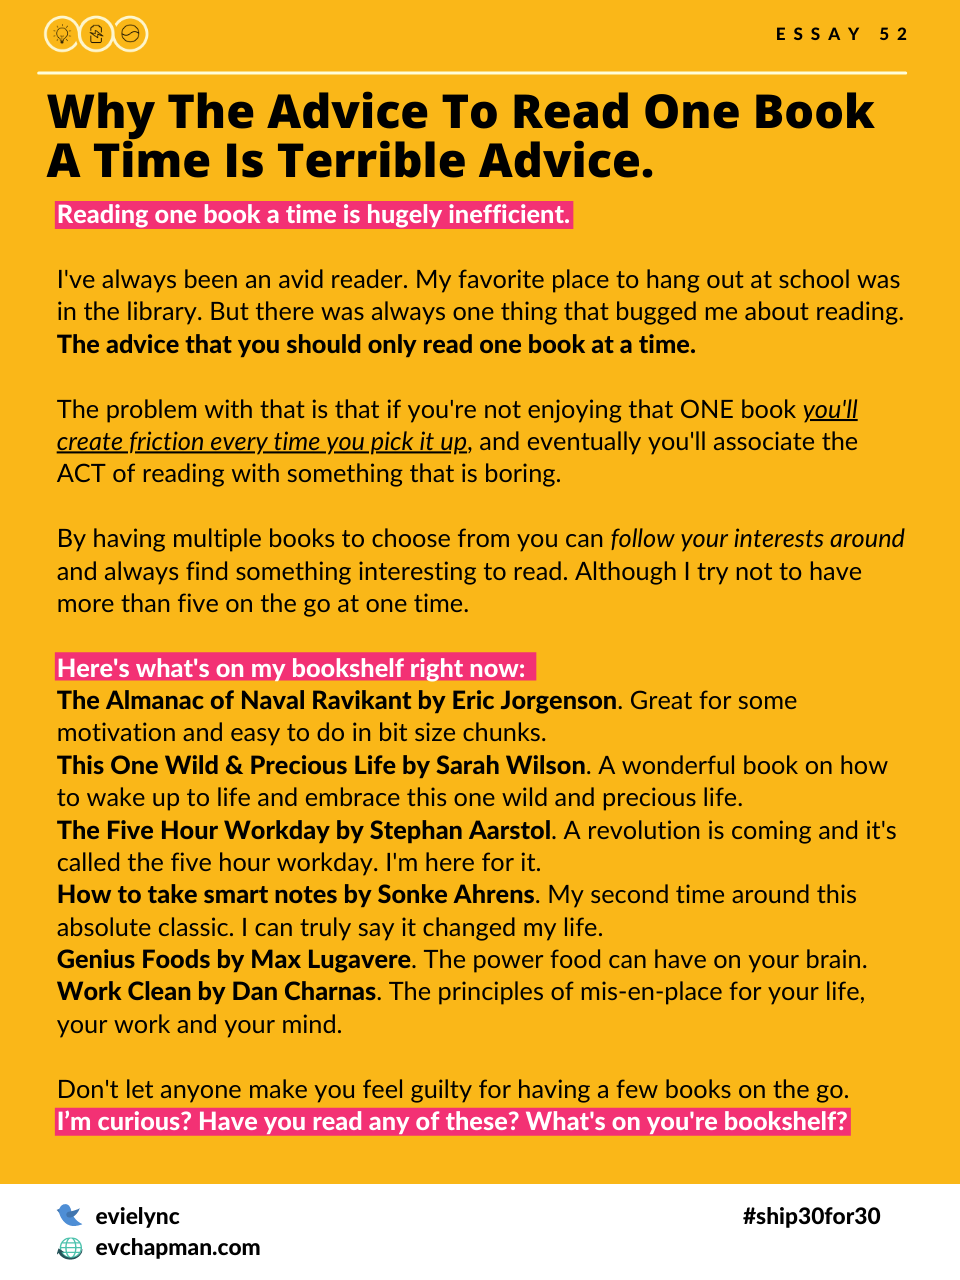 Why The Advice To Read One Book A Time Is Terrible Advice.